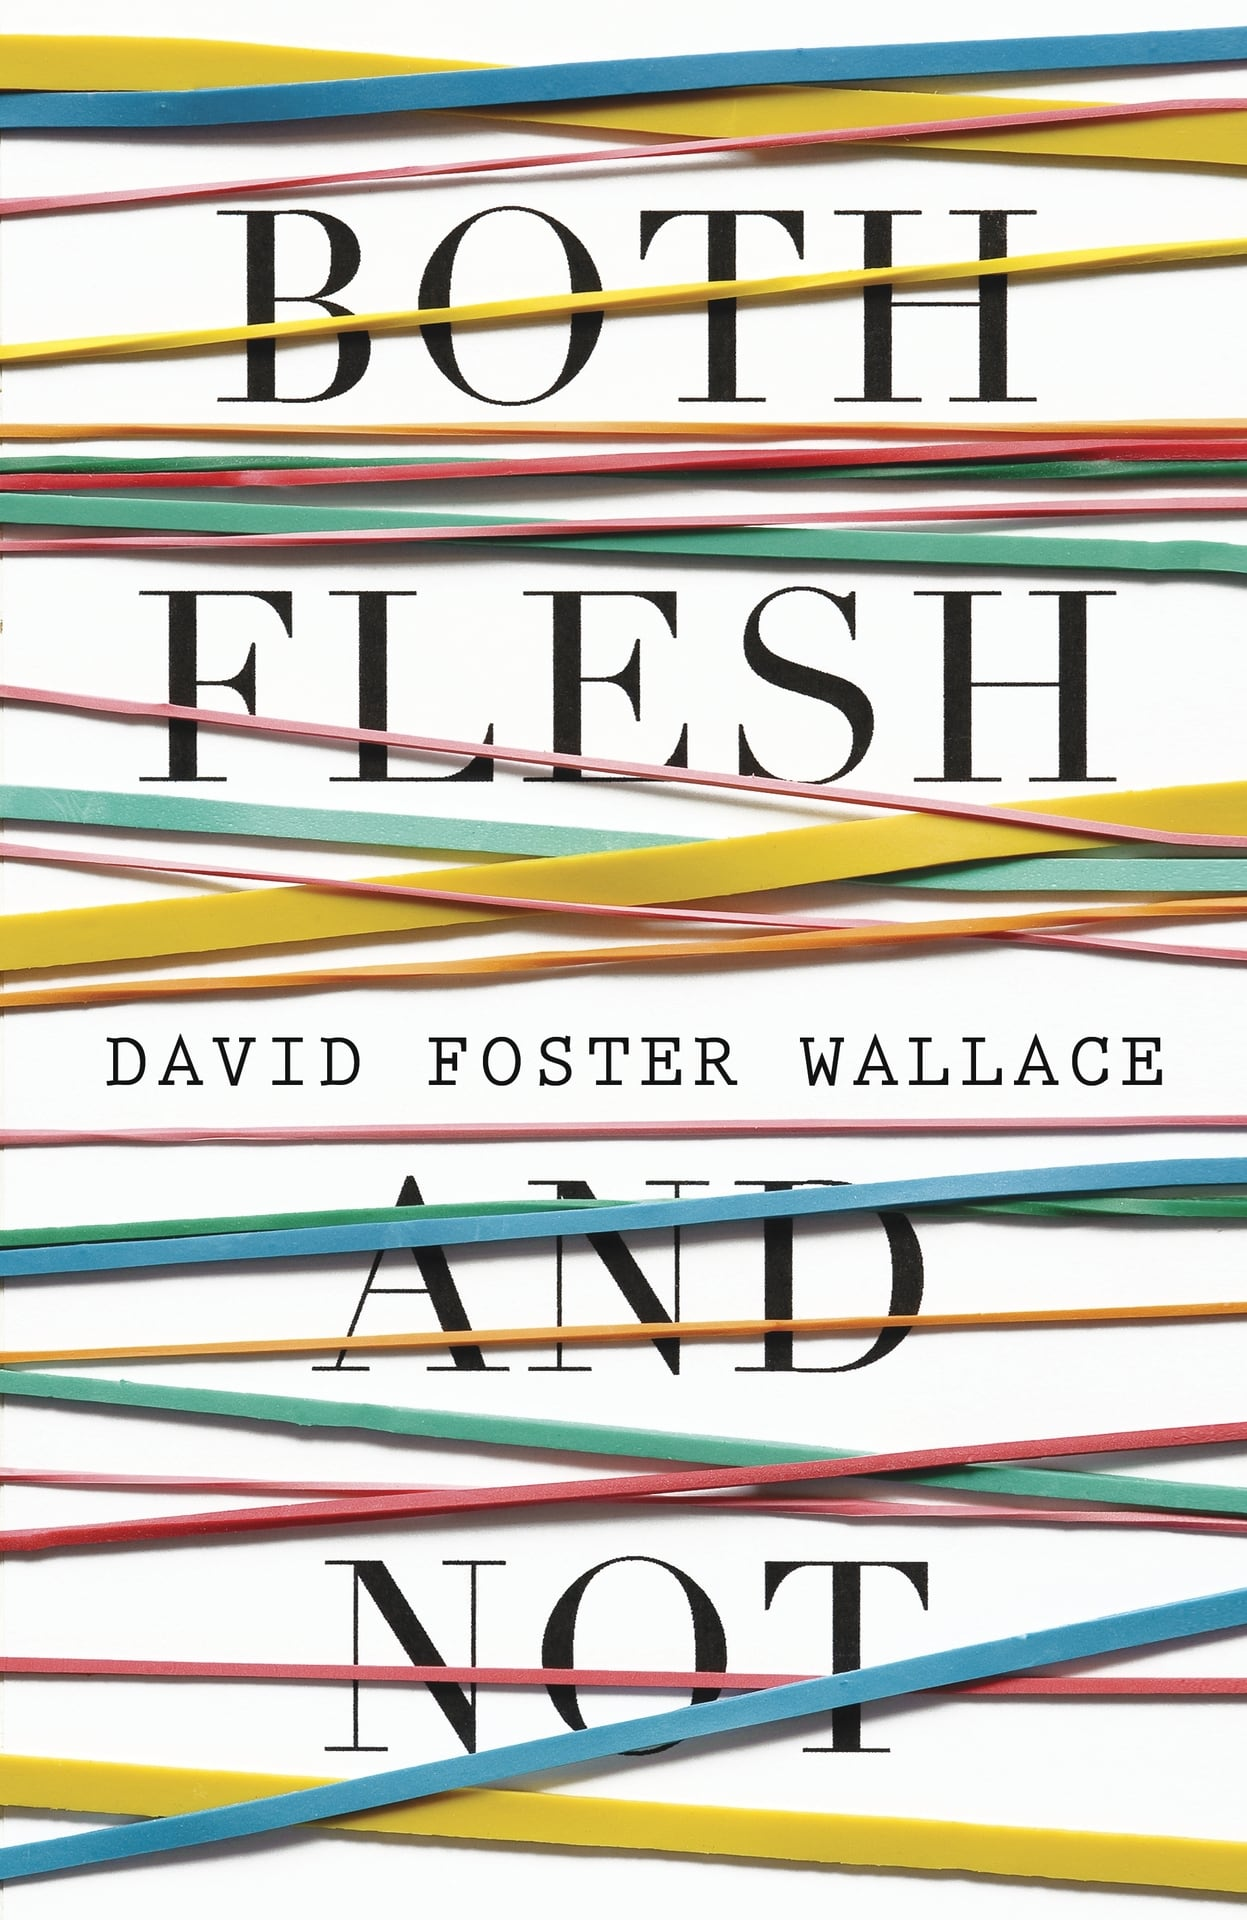 david foster wallace list essays